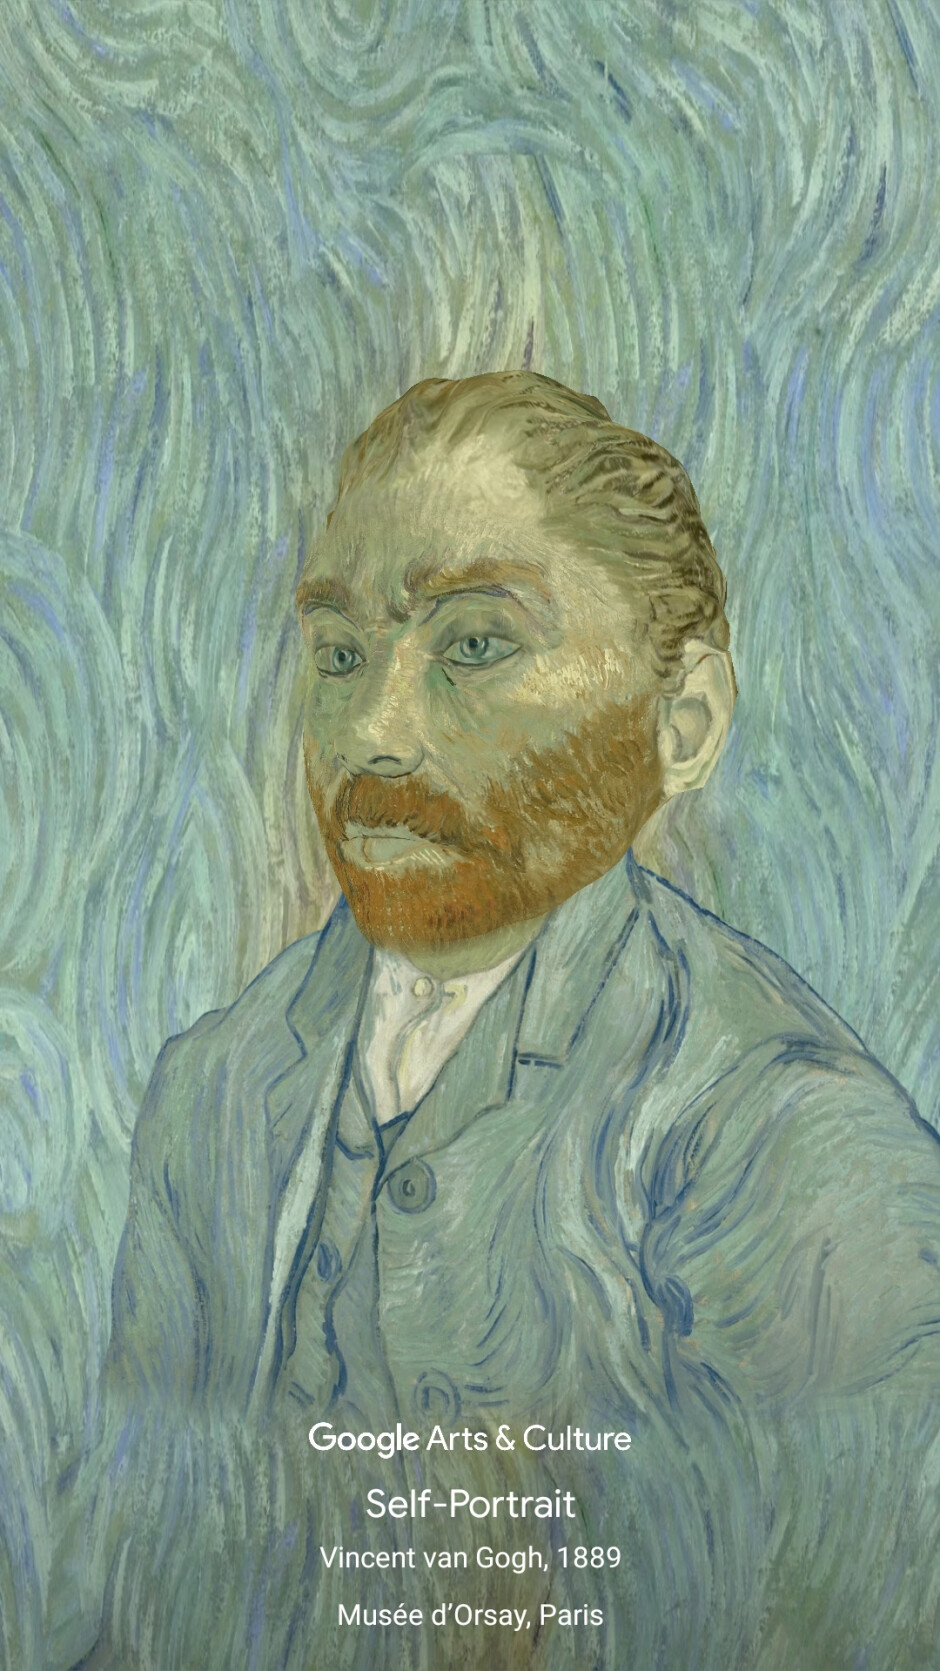 The filter places you into Van Gogh's iconic self-portrait - Have Van Gogh draw your portrait: Google launches Art Filters